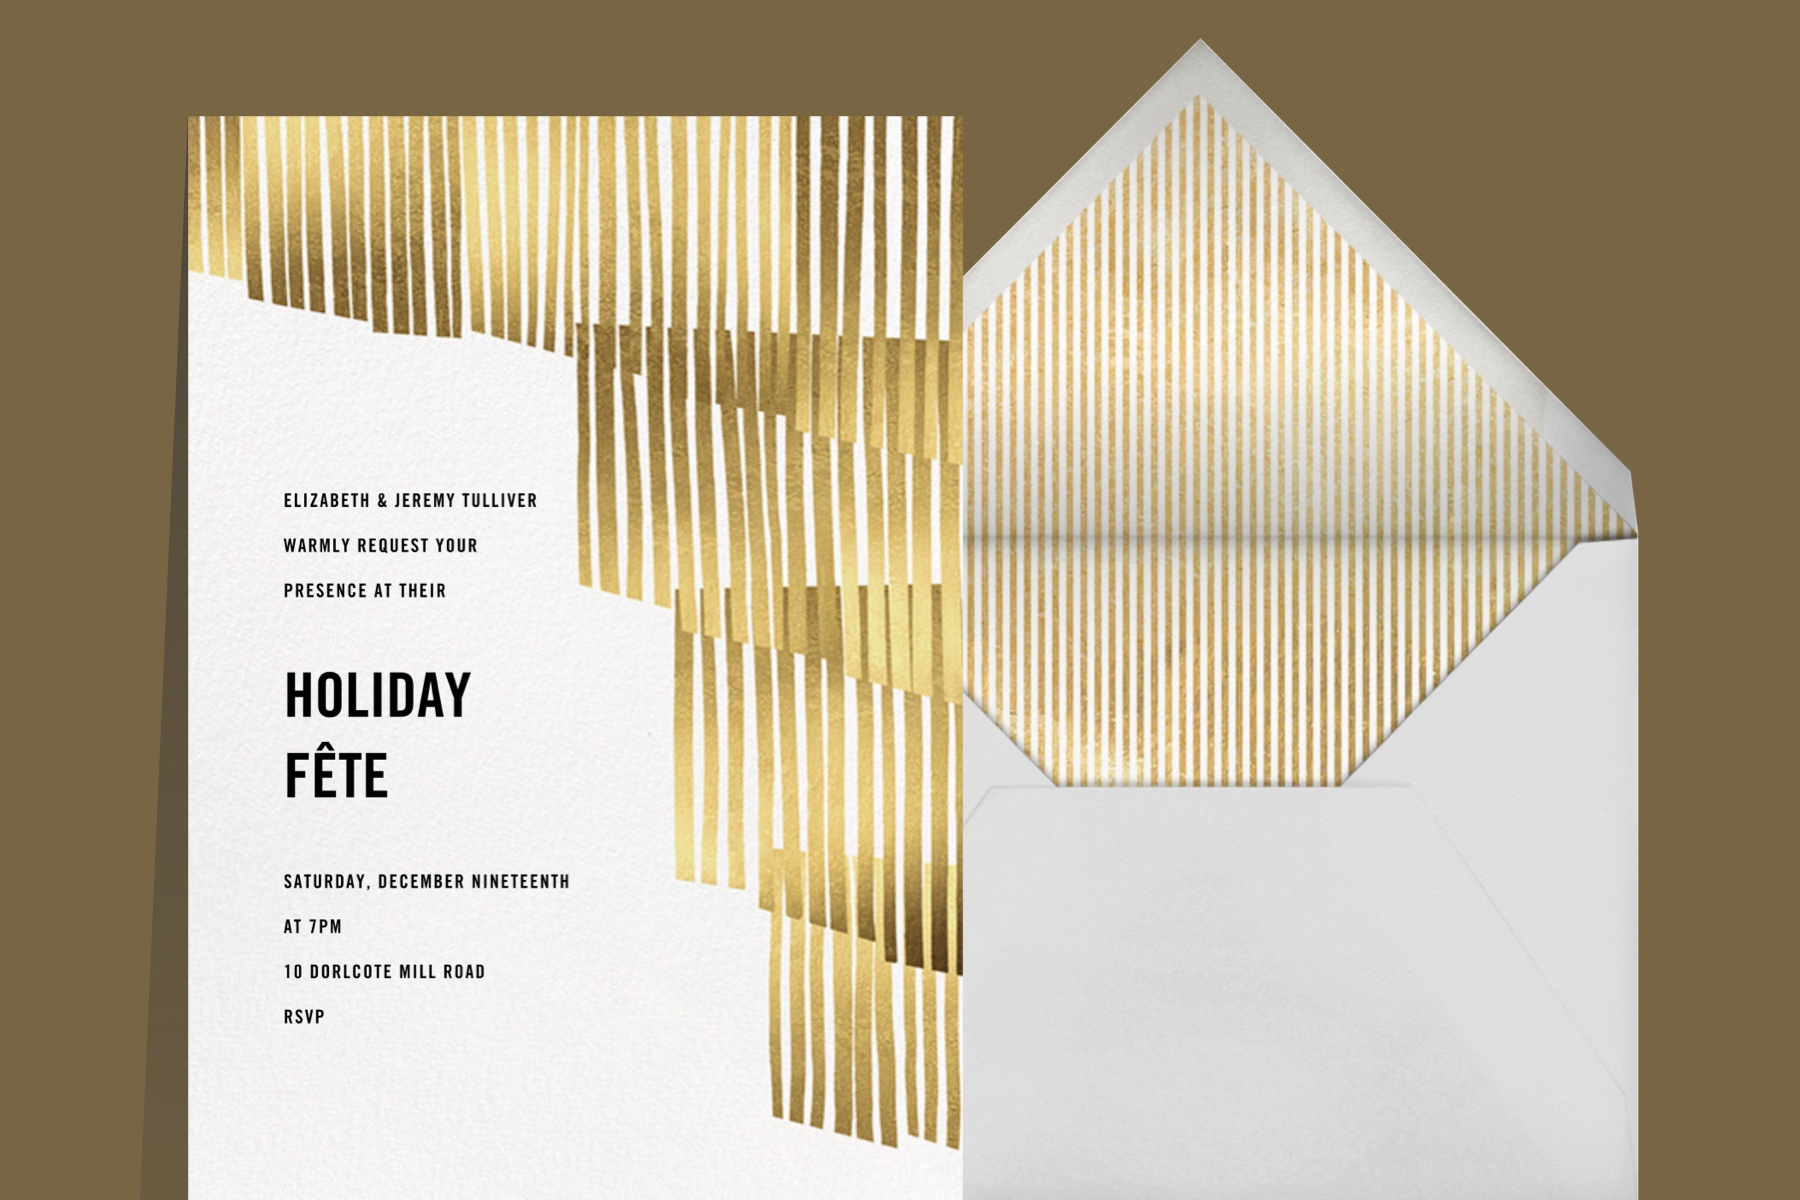 Swaying Fringe New Years party invitation featuring gold and white design